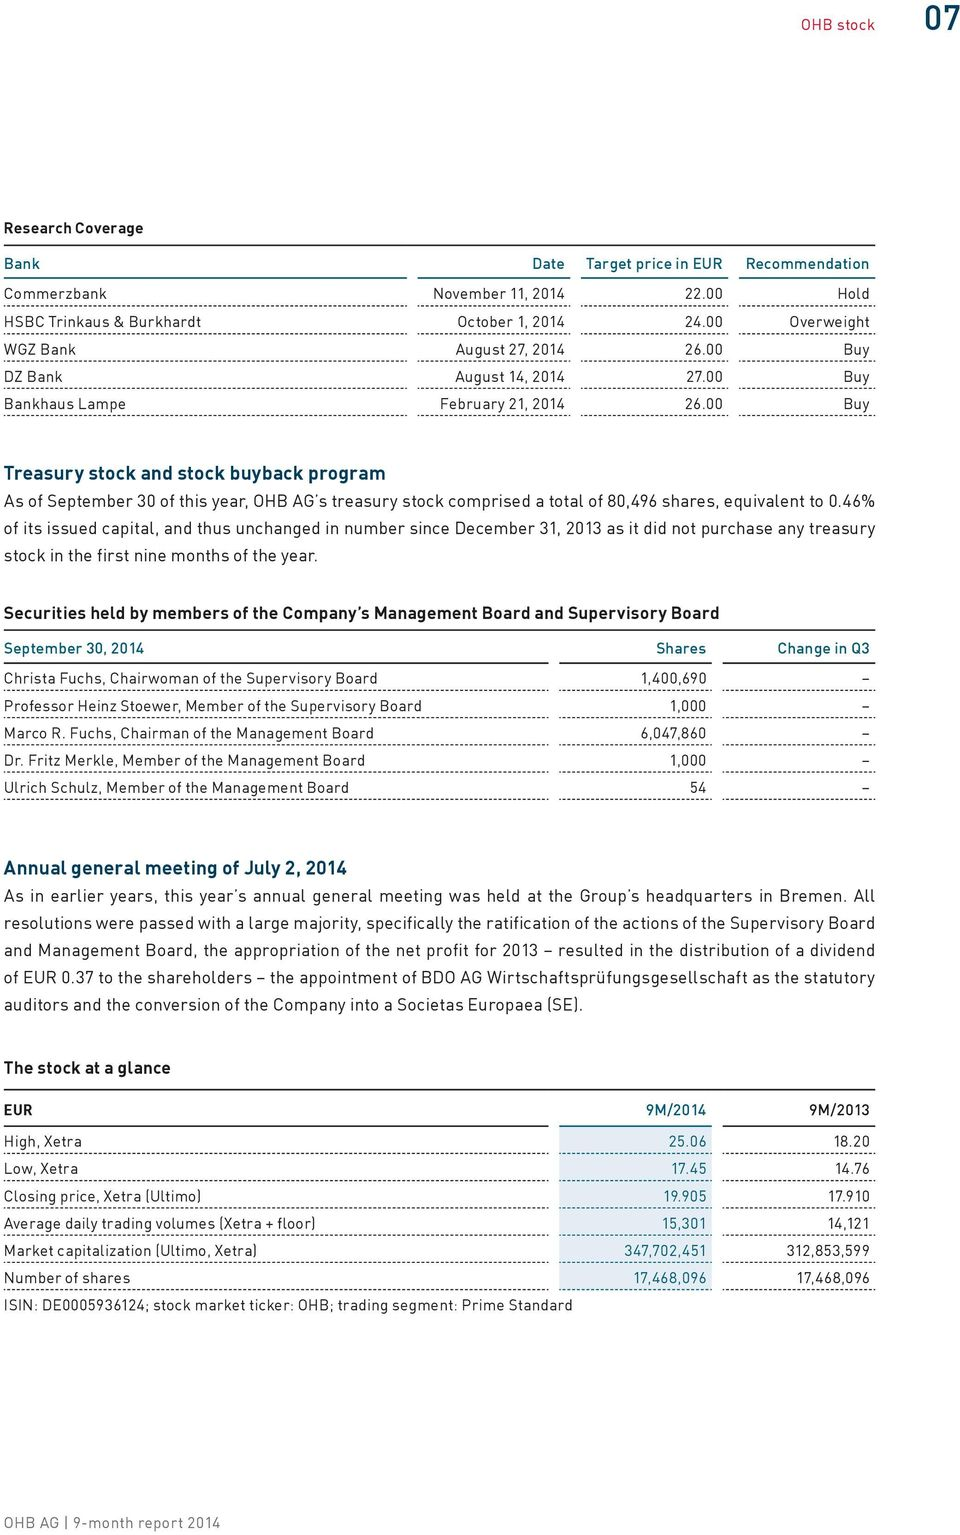 00 Buy Treasury stock and stock buyback program As of September 30 of this year, OHB AG s treasury stock comprised a total of 80,496 shares, equivalent to 0.